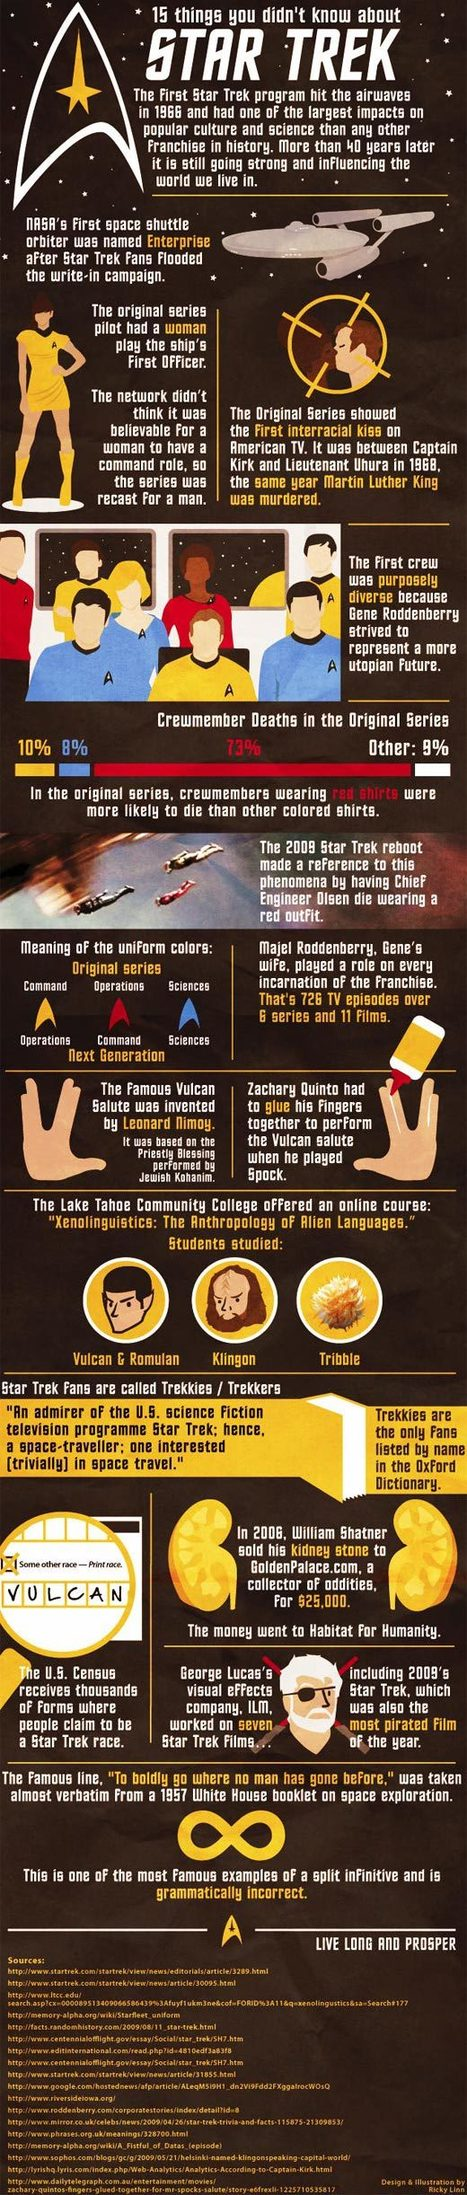 15 fun facts about Star Trek [infographic] - Holy Kaw!   total nonsense, everything i like   Scoop.it